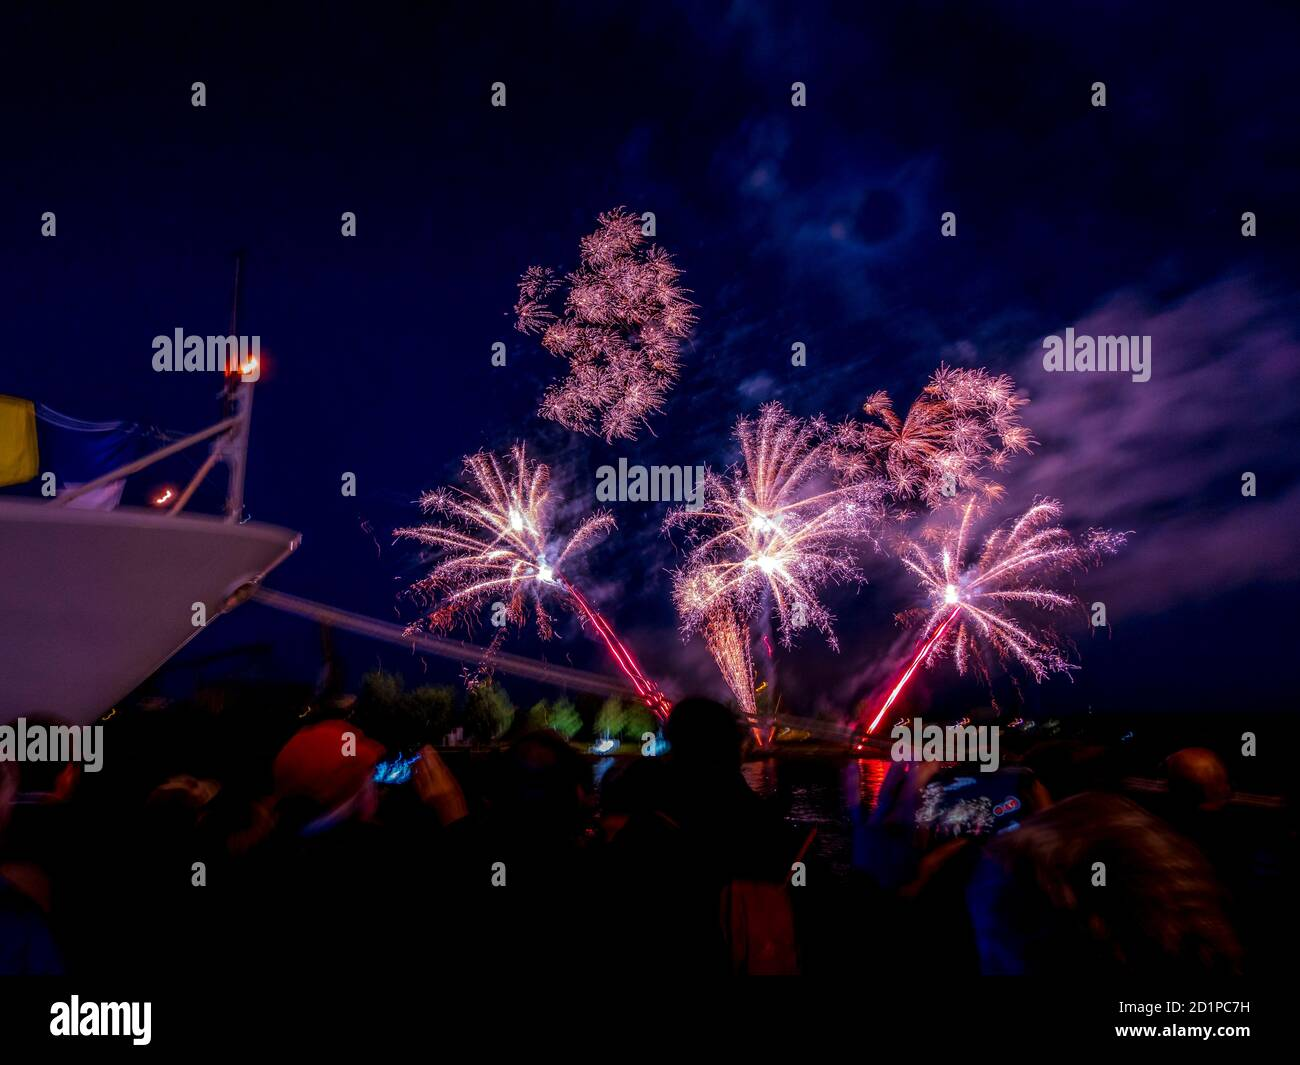 Big Firework Scene High Resolution Stock Photography And Images Alamy